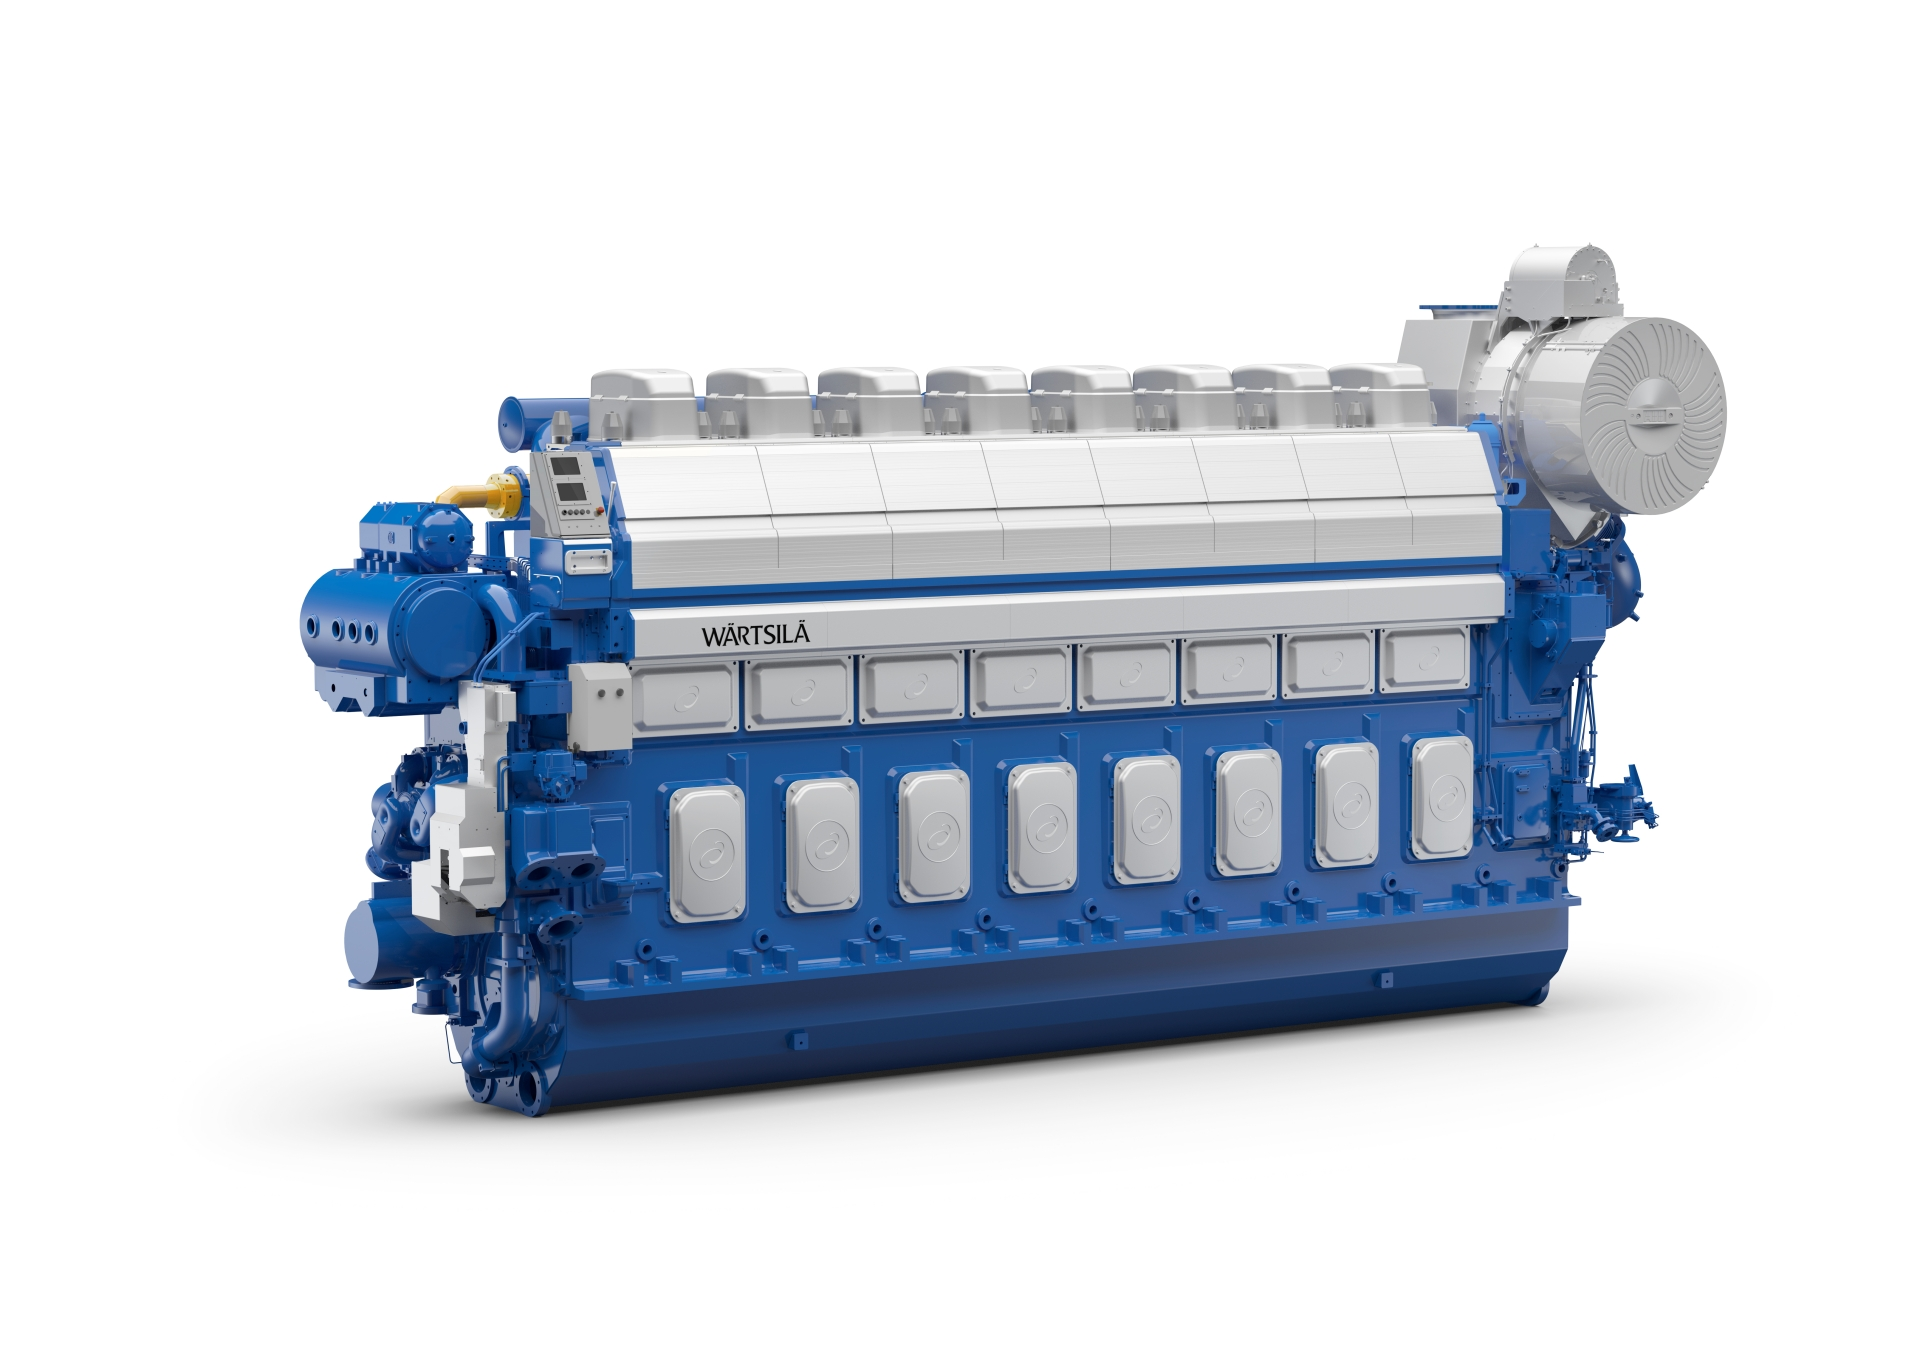 Wärtsilä 46DF (8L46FDF) product image rendering with white background